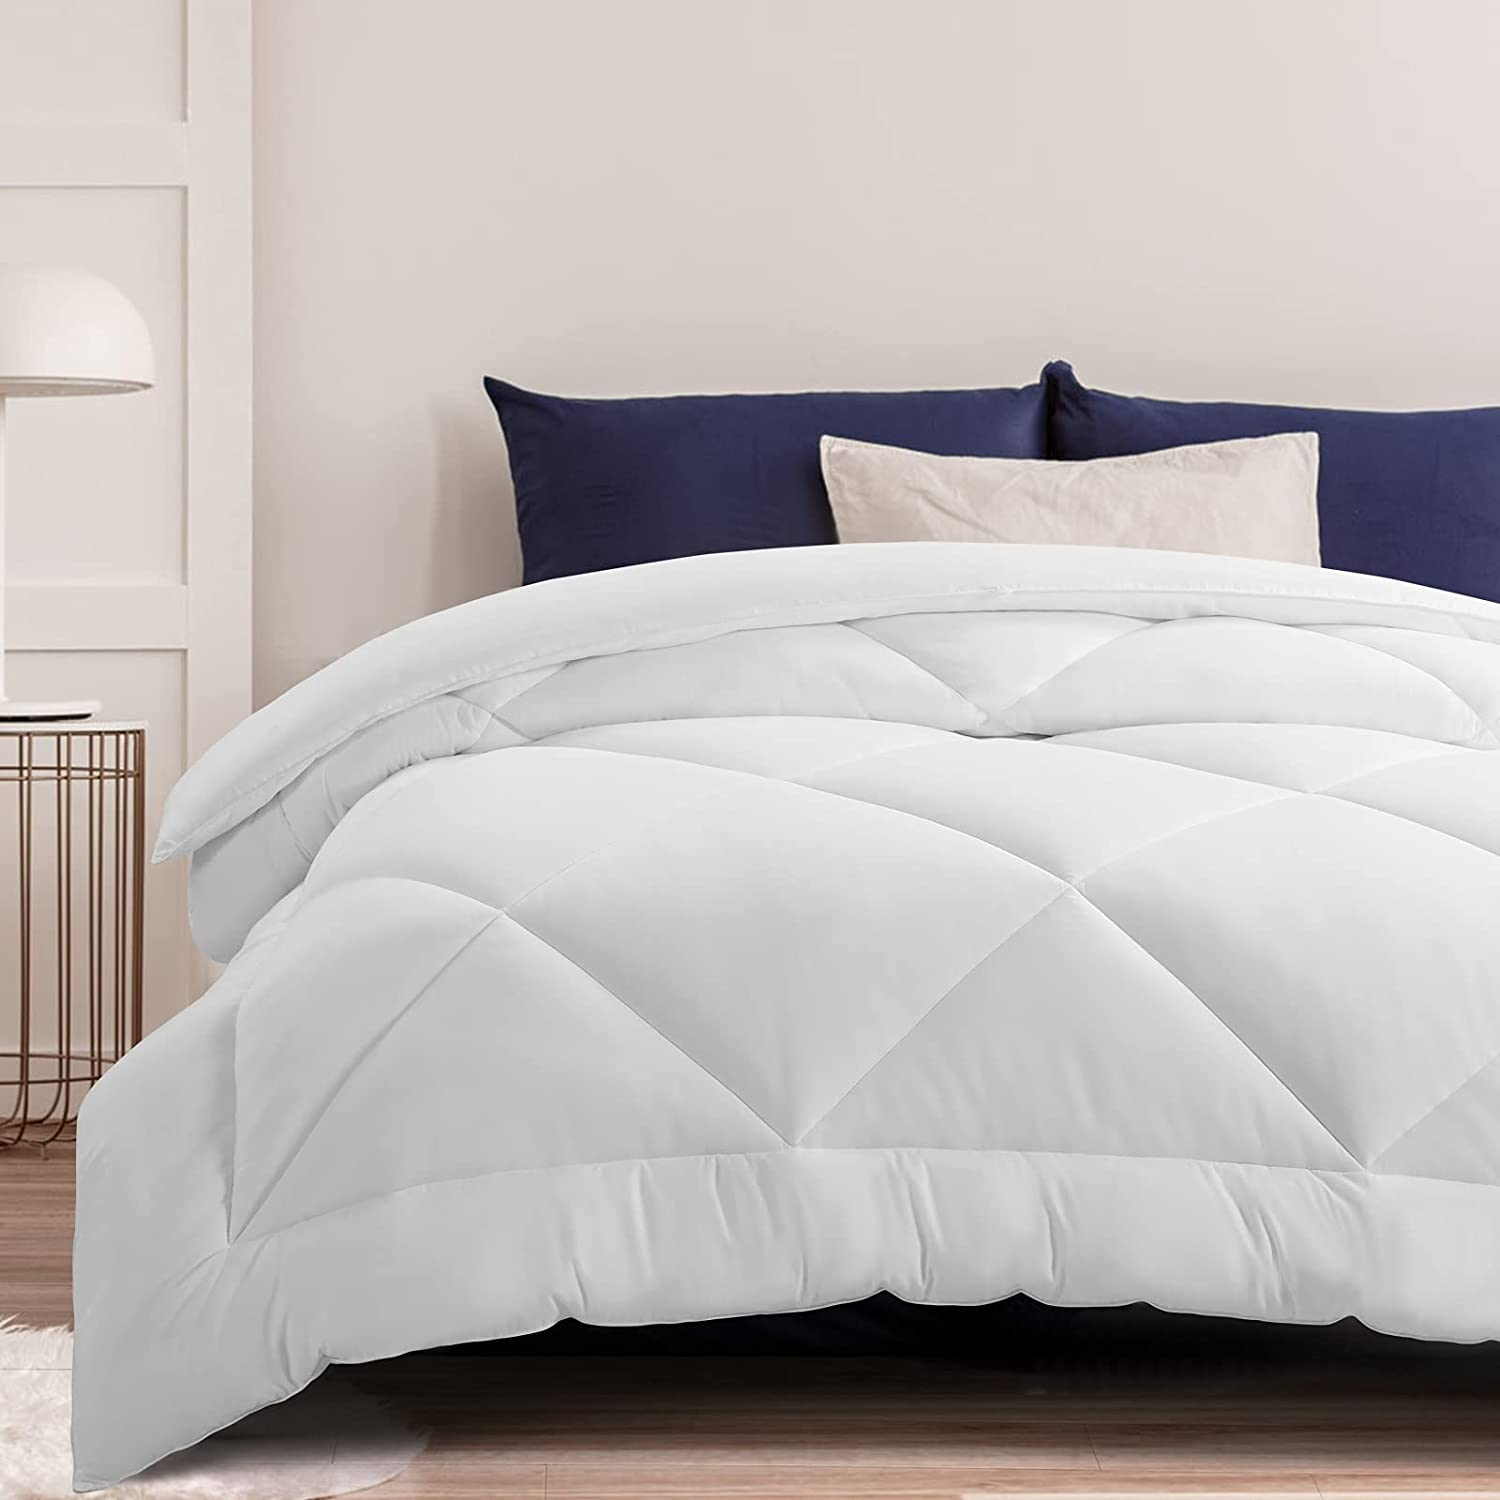 MOONCAST All Season Ranking TOP16 Queen Cheap bargain Comforter-Soft Alternativ Down Quilted